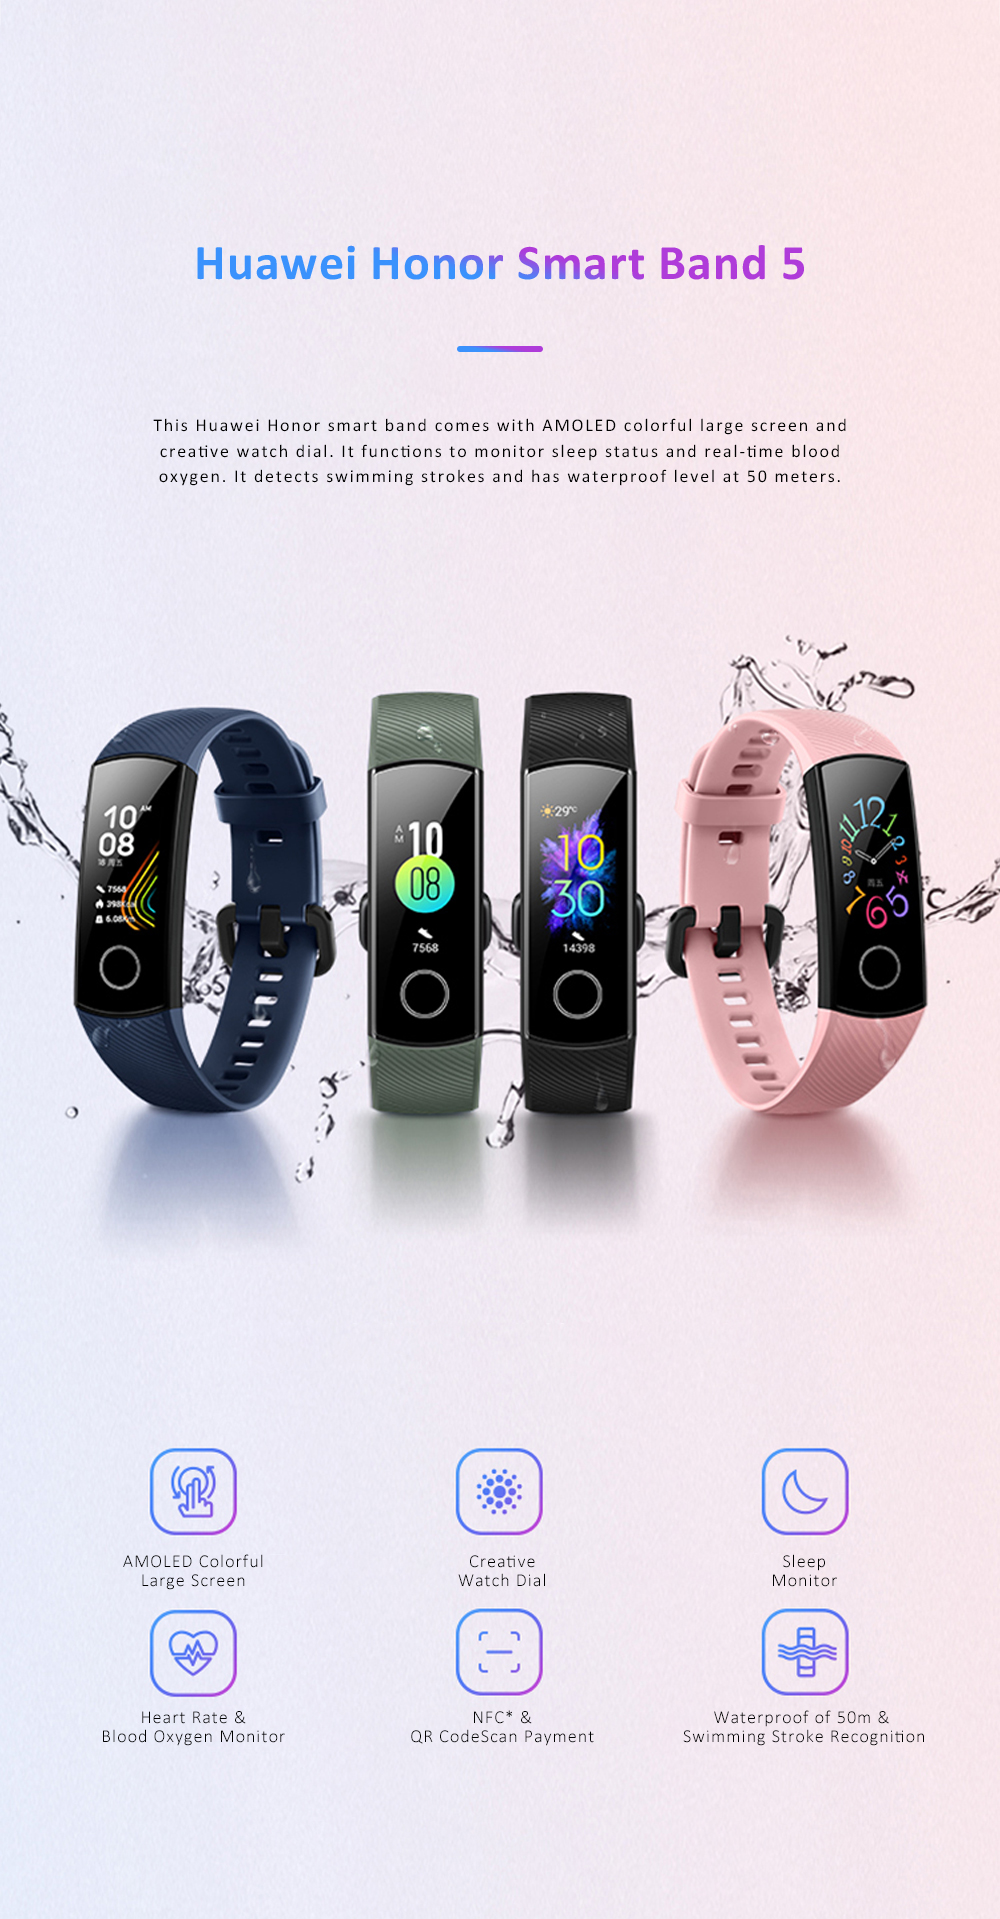 Huawei Honor Smart Band 5 Sports Mobile Blood Oxygen Monitoring Wristband Colorful Screen Bracelet 0